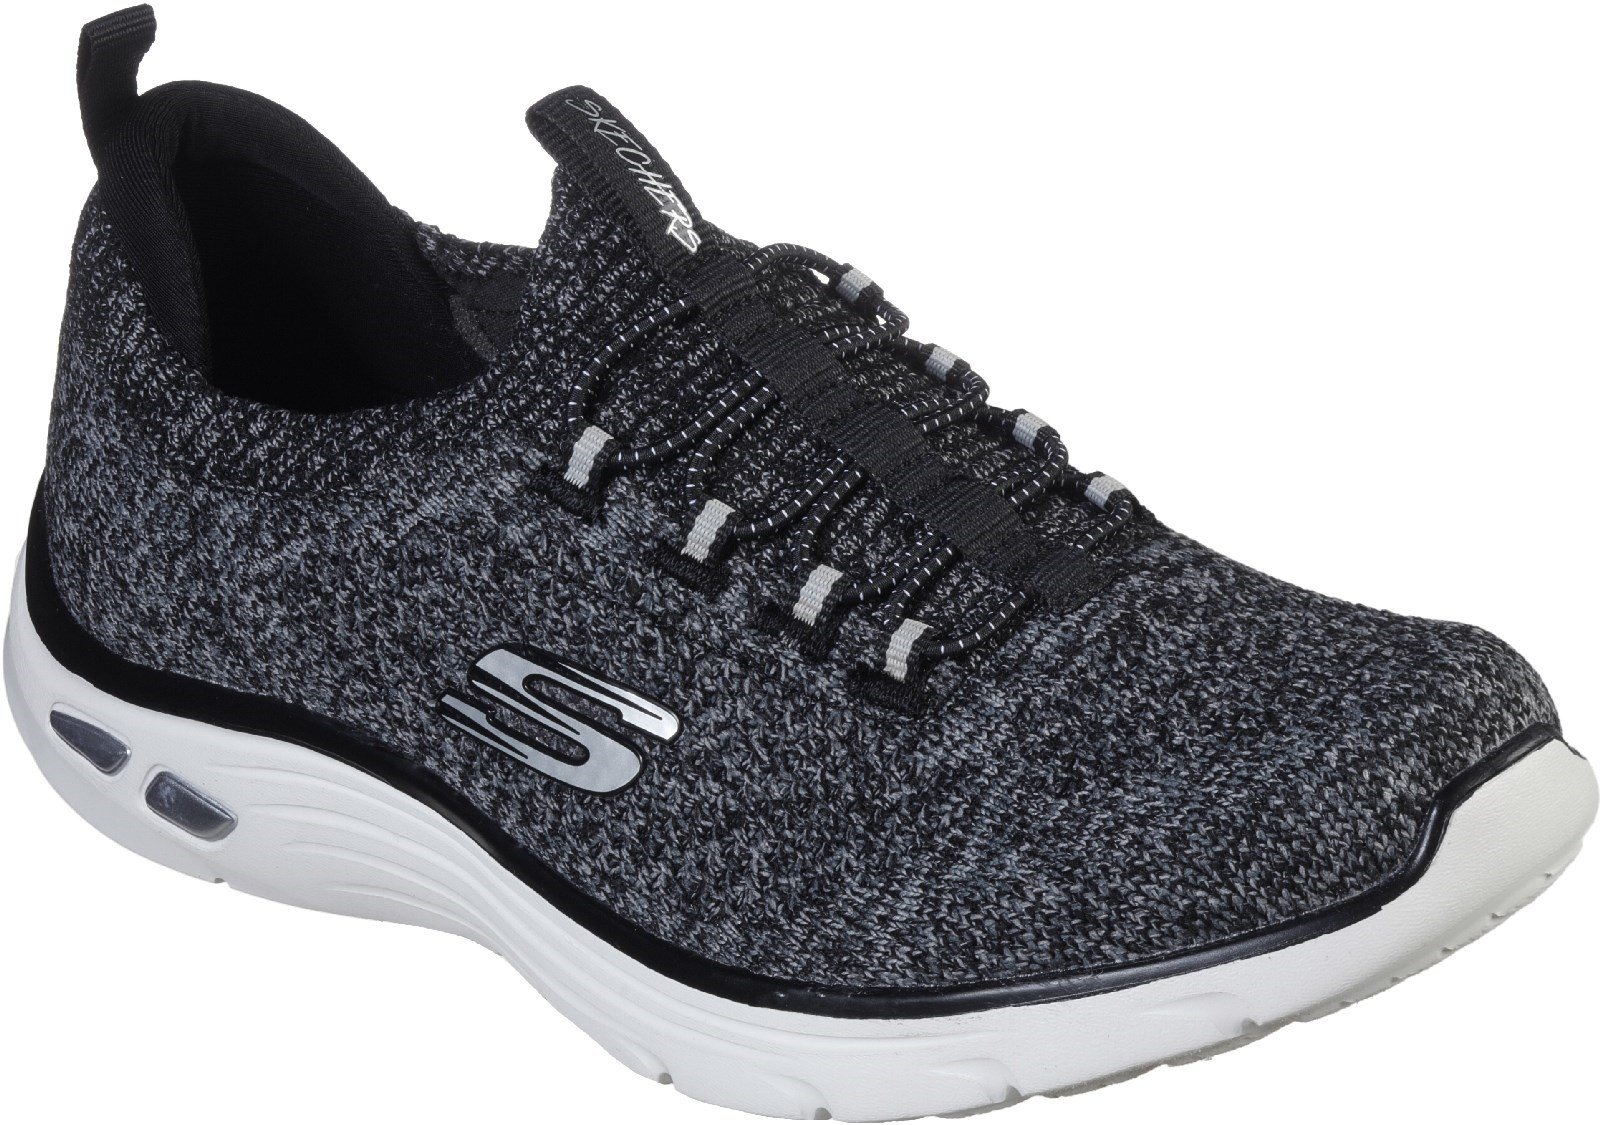 Skechers Women's Relaxed Fit Empire D'Lux Sharp Trainers Various Colours 30300 - Black/White 3